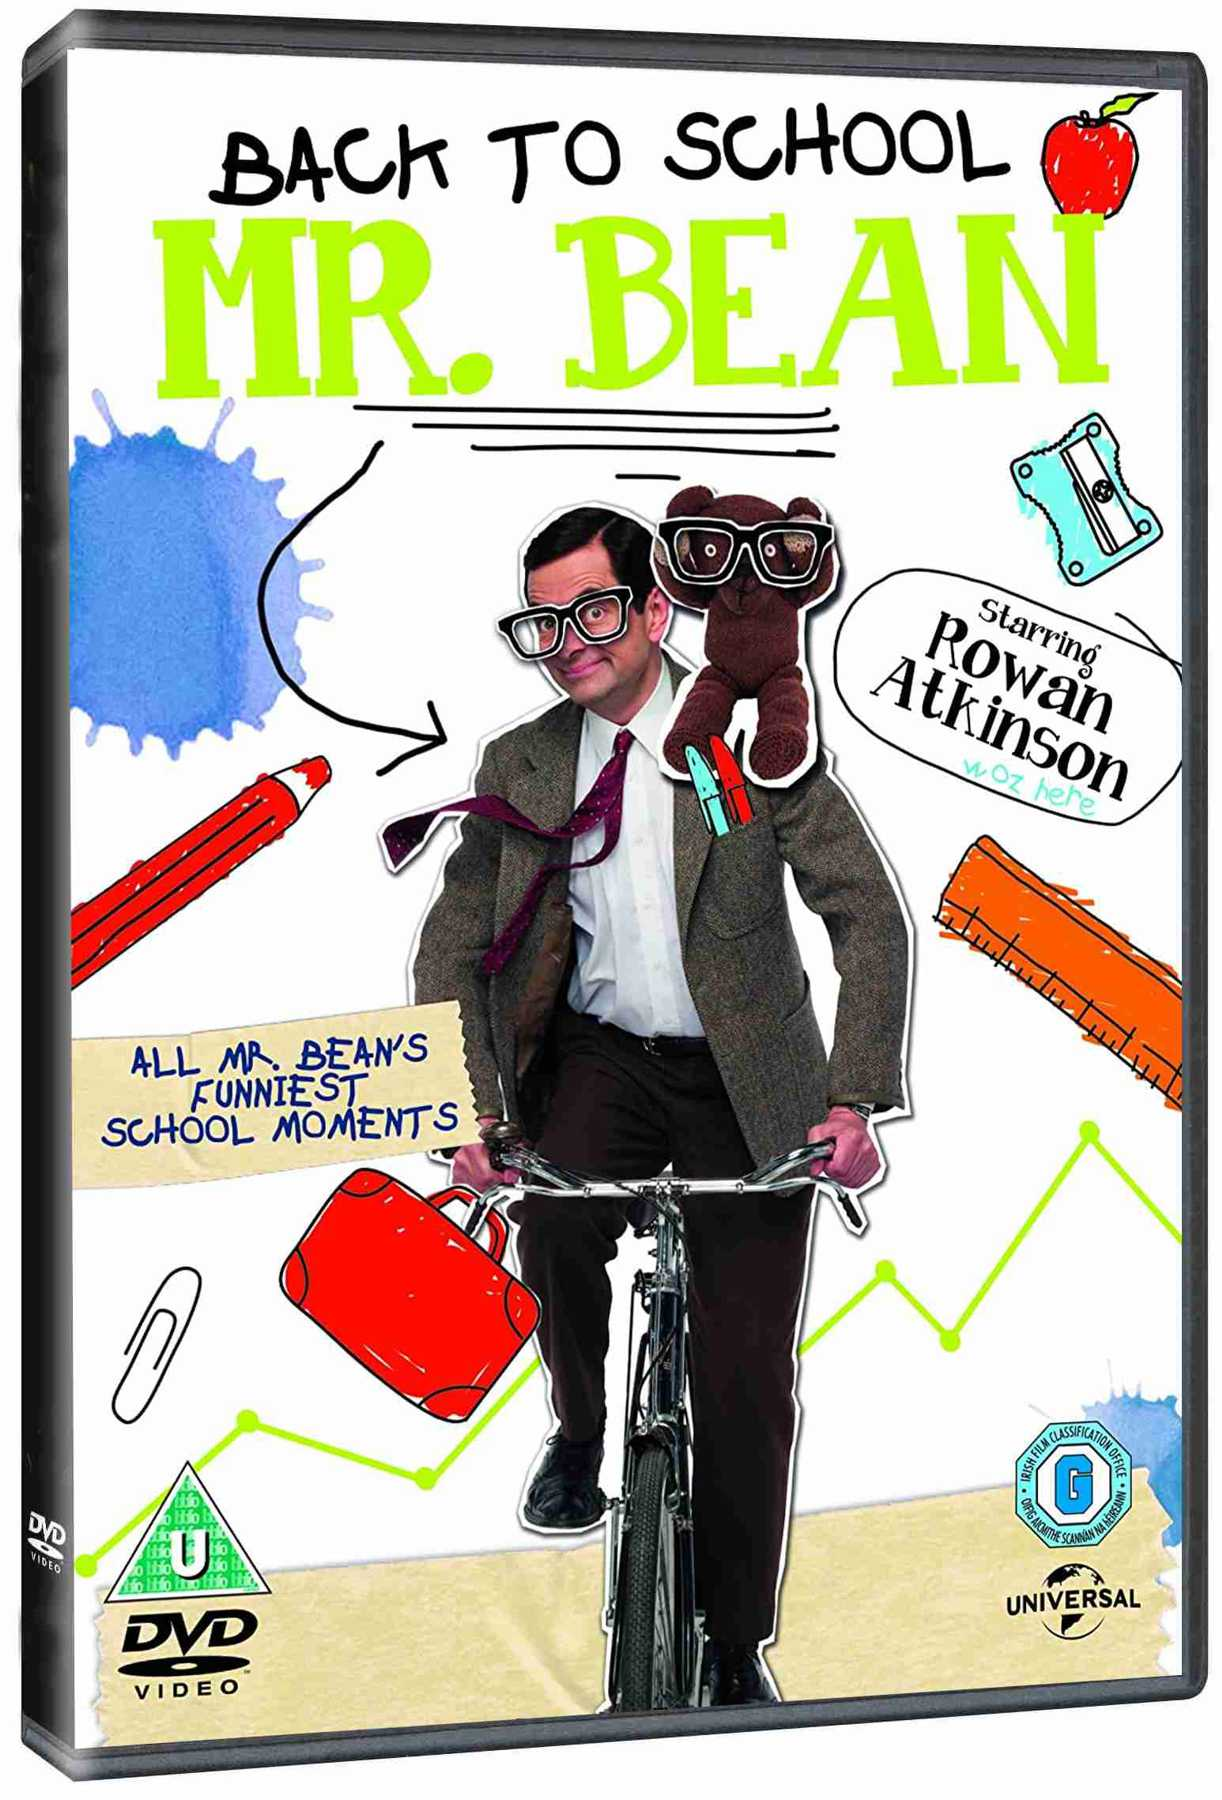 Mr. Bean - Back to school - DVD